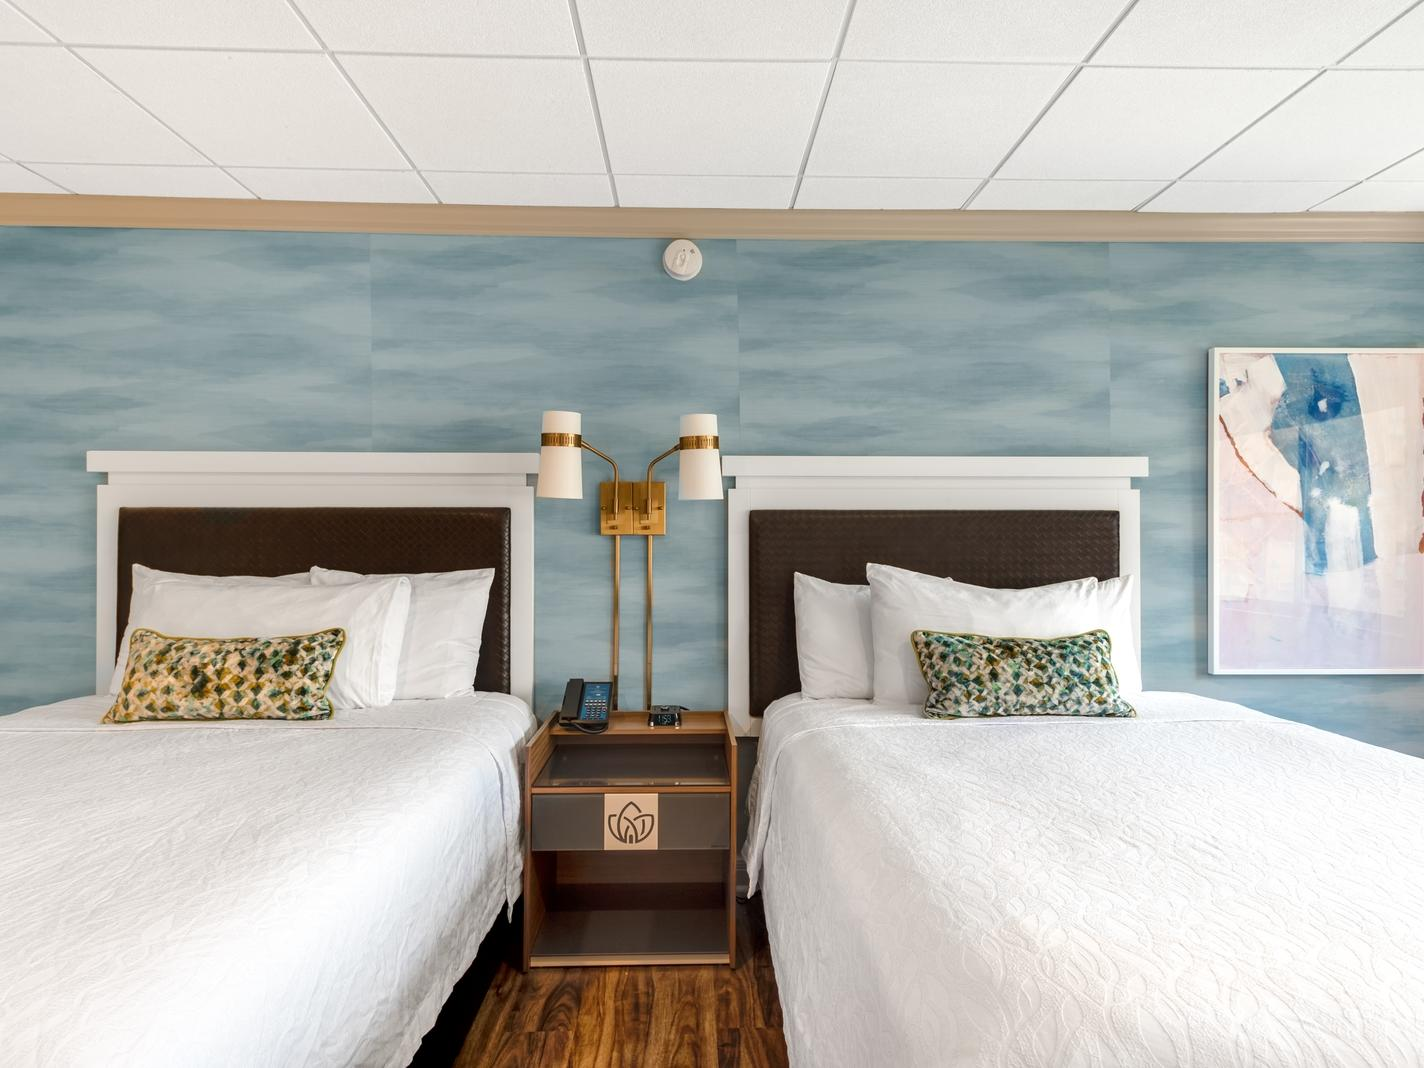 Two guest beds with lamp on nightstand